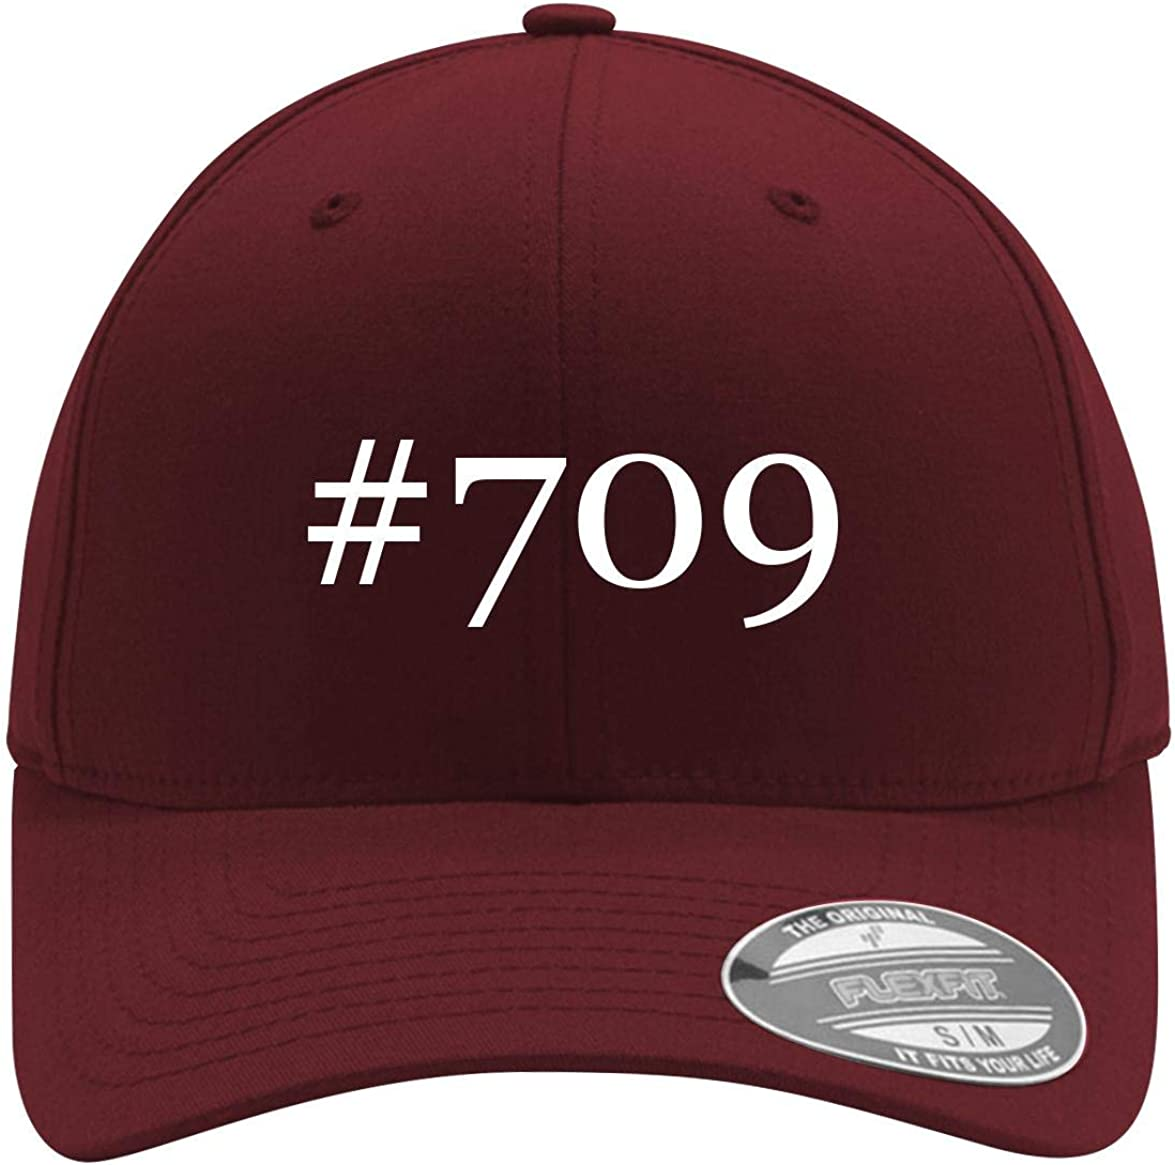 #709 - Adult Men'S Hashtag Flexfit Baseball Hut Cap